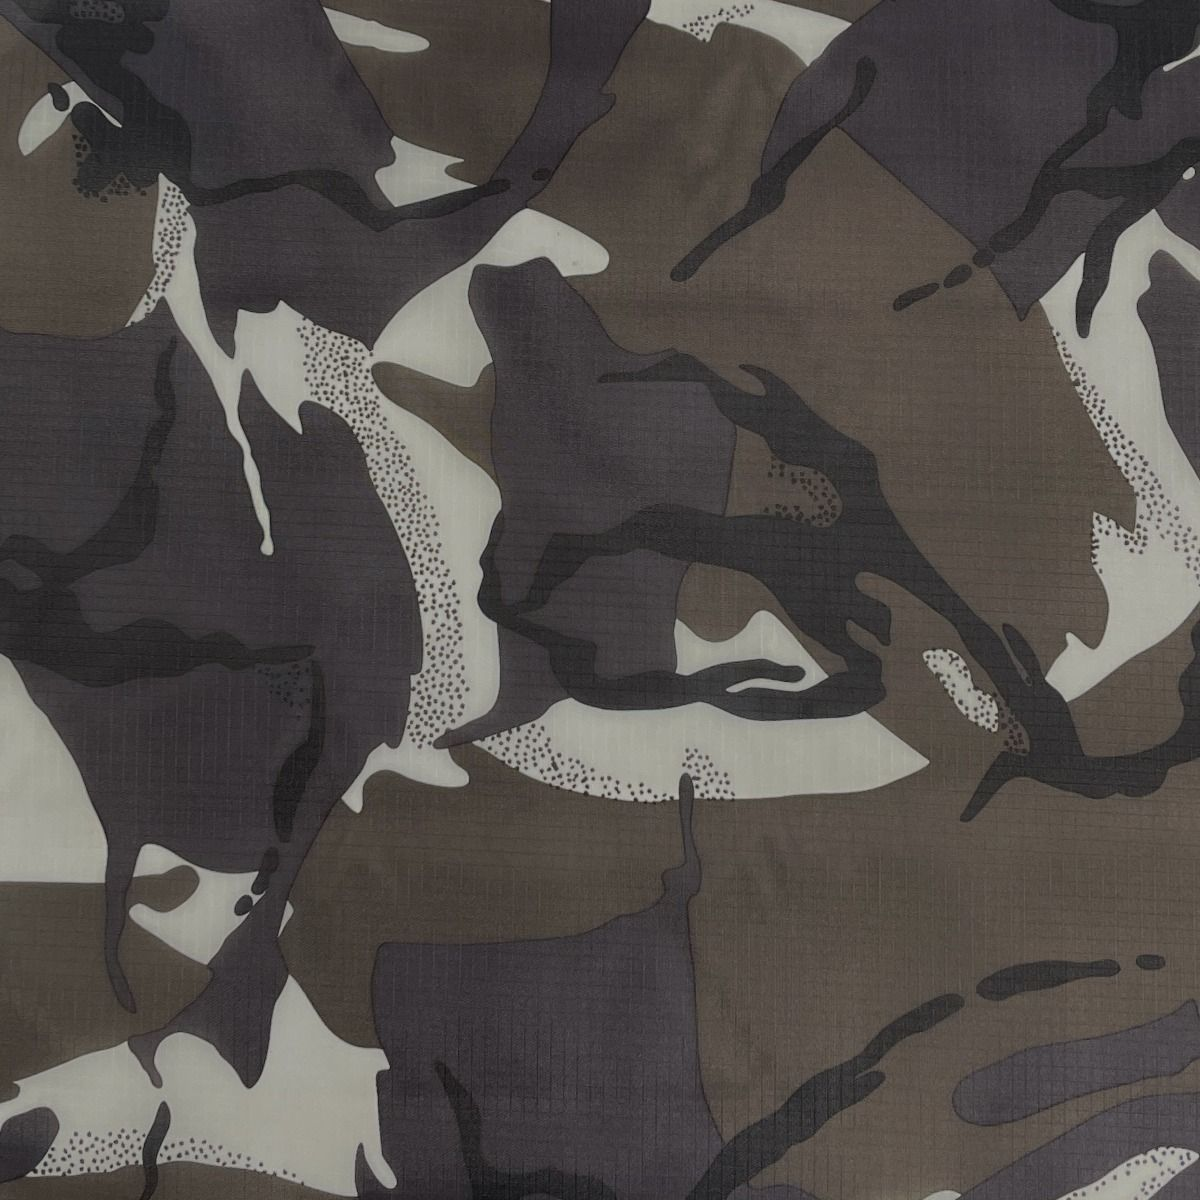 Ripstop Fabric Waterproof Material - Camouflage Arctic